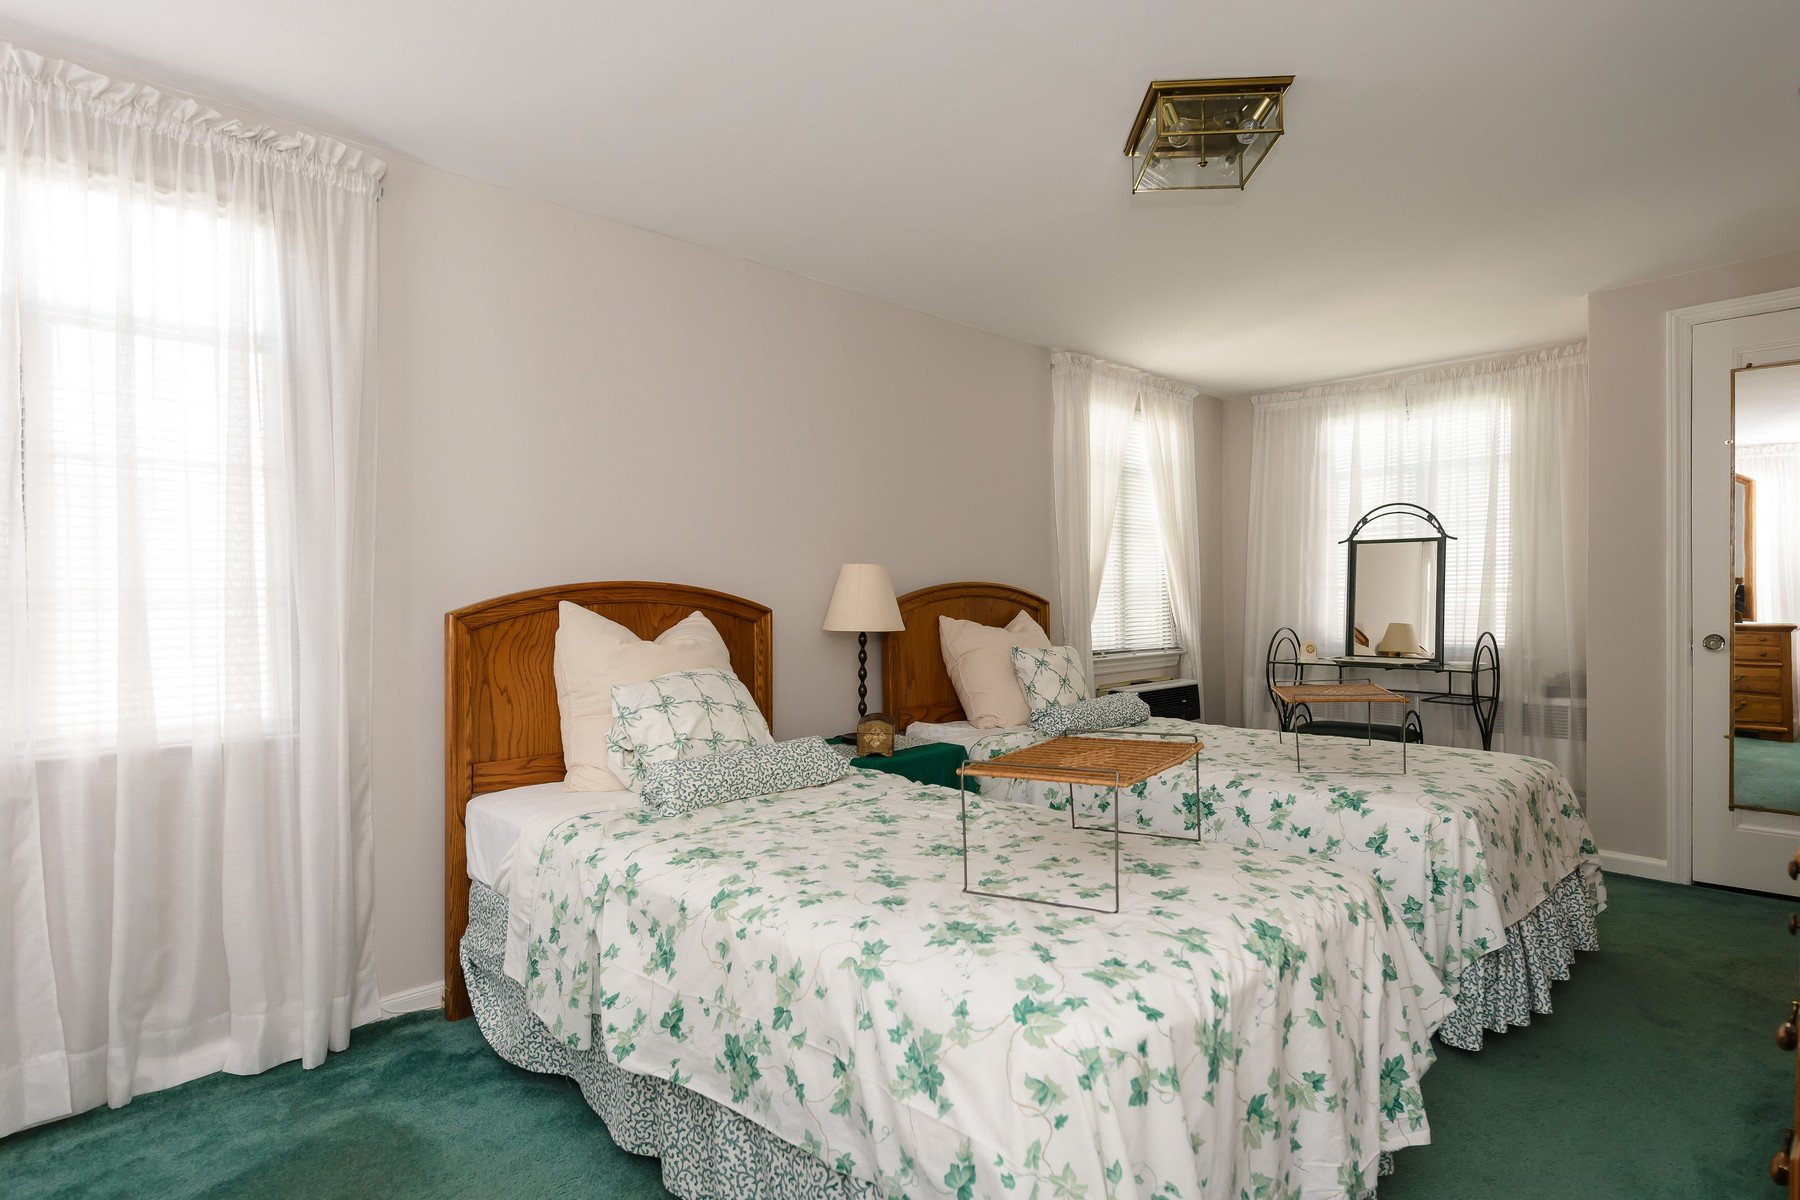 Additional photo for property listing at 80-59  222nd St   , Hollis Hills, NY 11427 80-59  222nd St Queens Village, New York 11427 United States